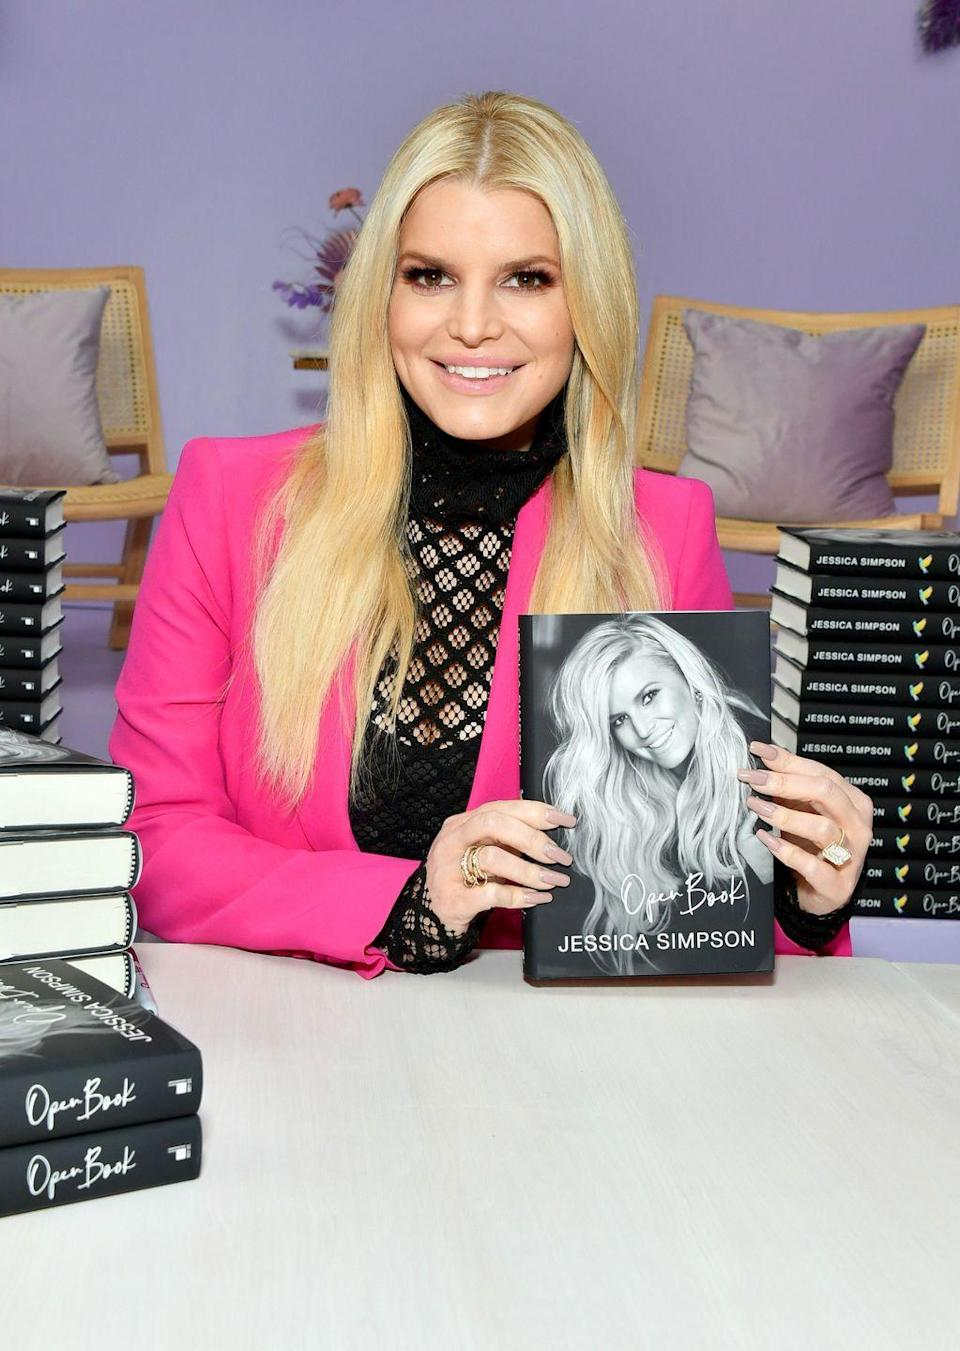 <p>Since her time on <em>Newlyweds</em>, Simpson stepped away from the spotlight to build a family and a billion-dollar fashion empire. The 39-year-old also released her memoir <em>Open Book</em> in February 2020, which shot to the top of the New York Times Bestseller list.</p>